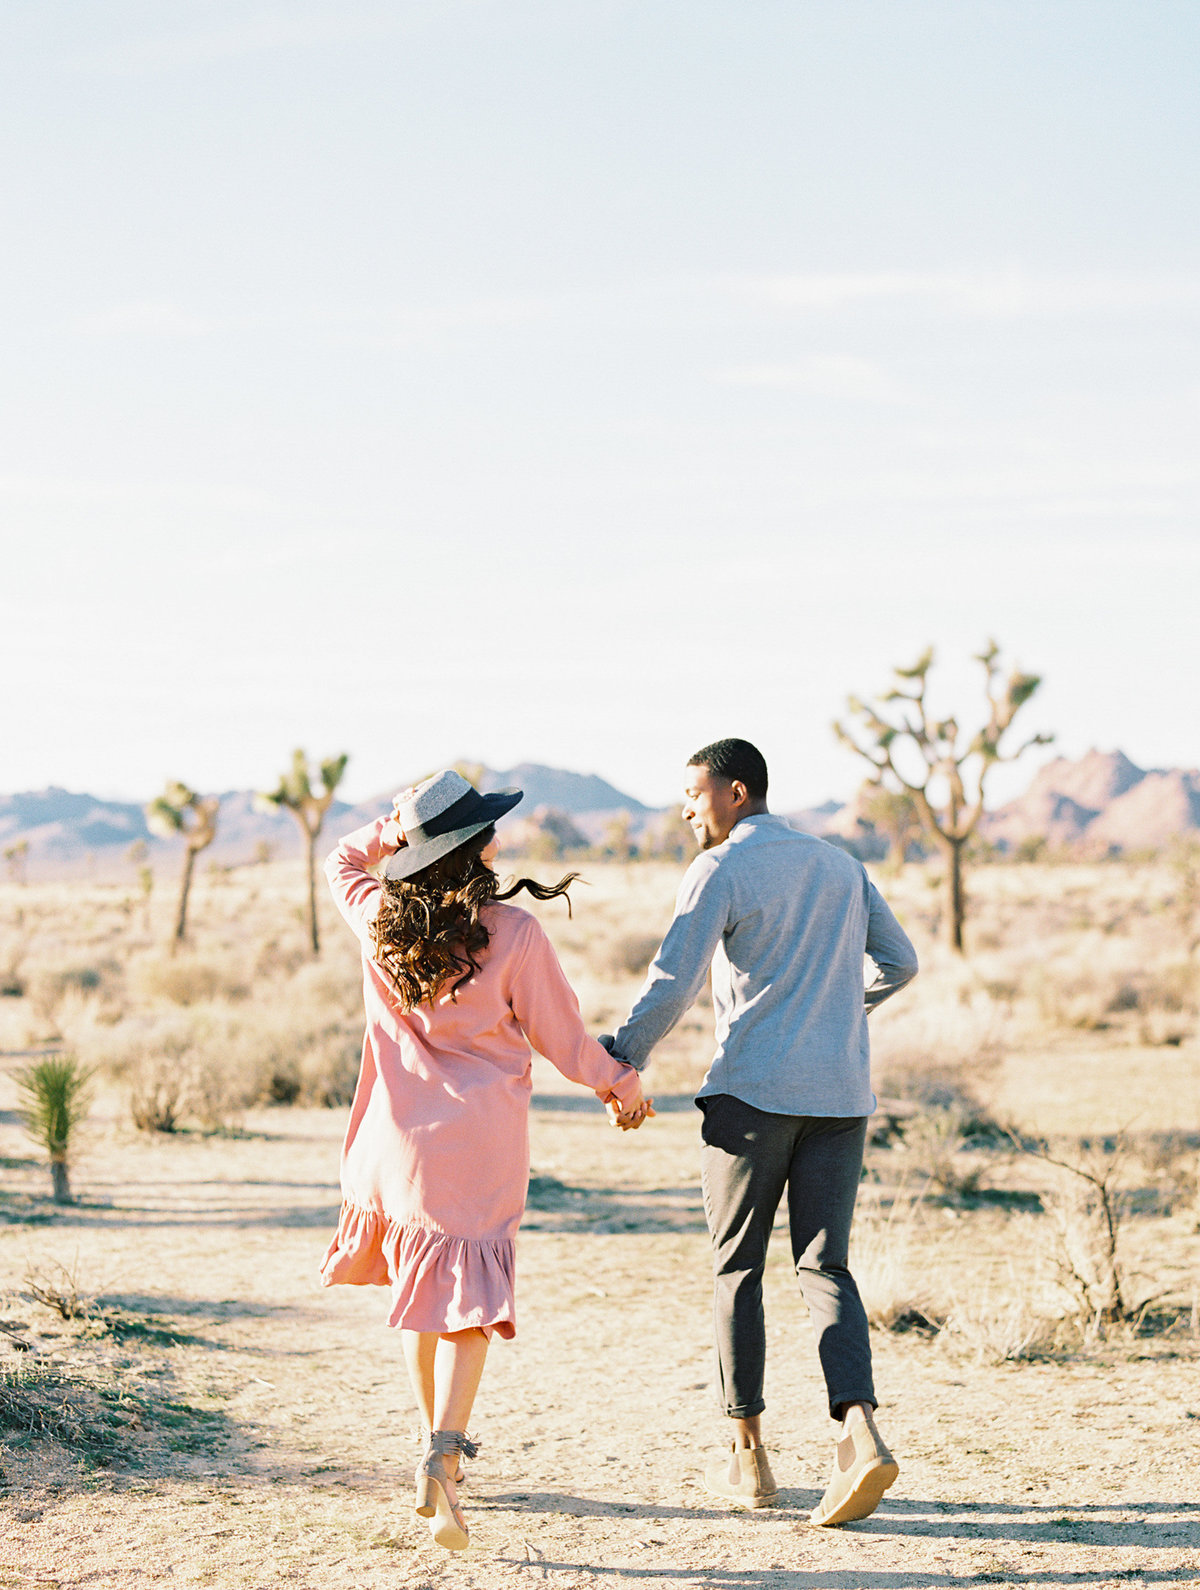 Babsie-Ly-Photography-Joshua-Tree-Engagement-Photography-Fine-Art-Film-MarinaEvan-004